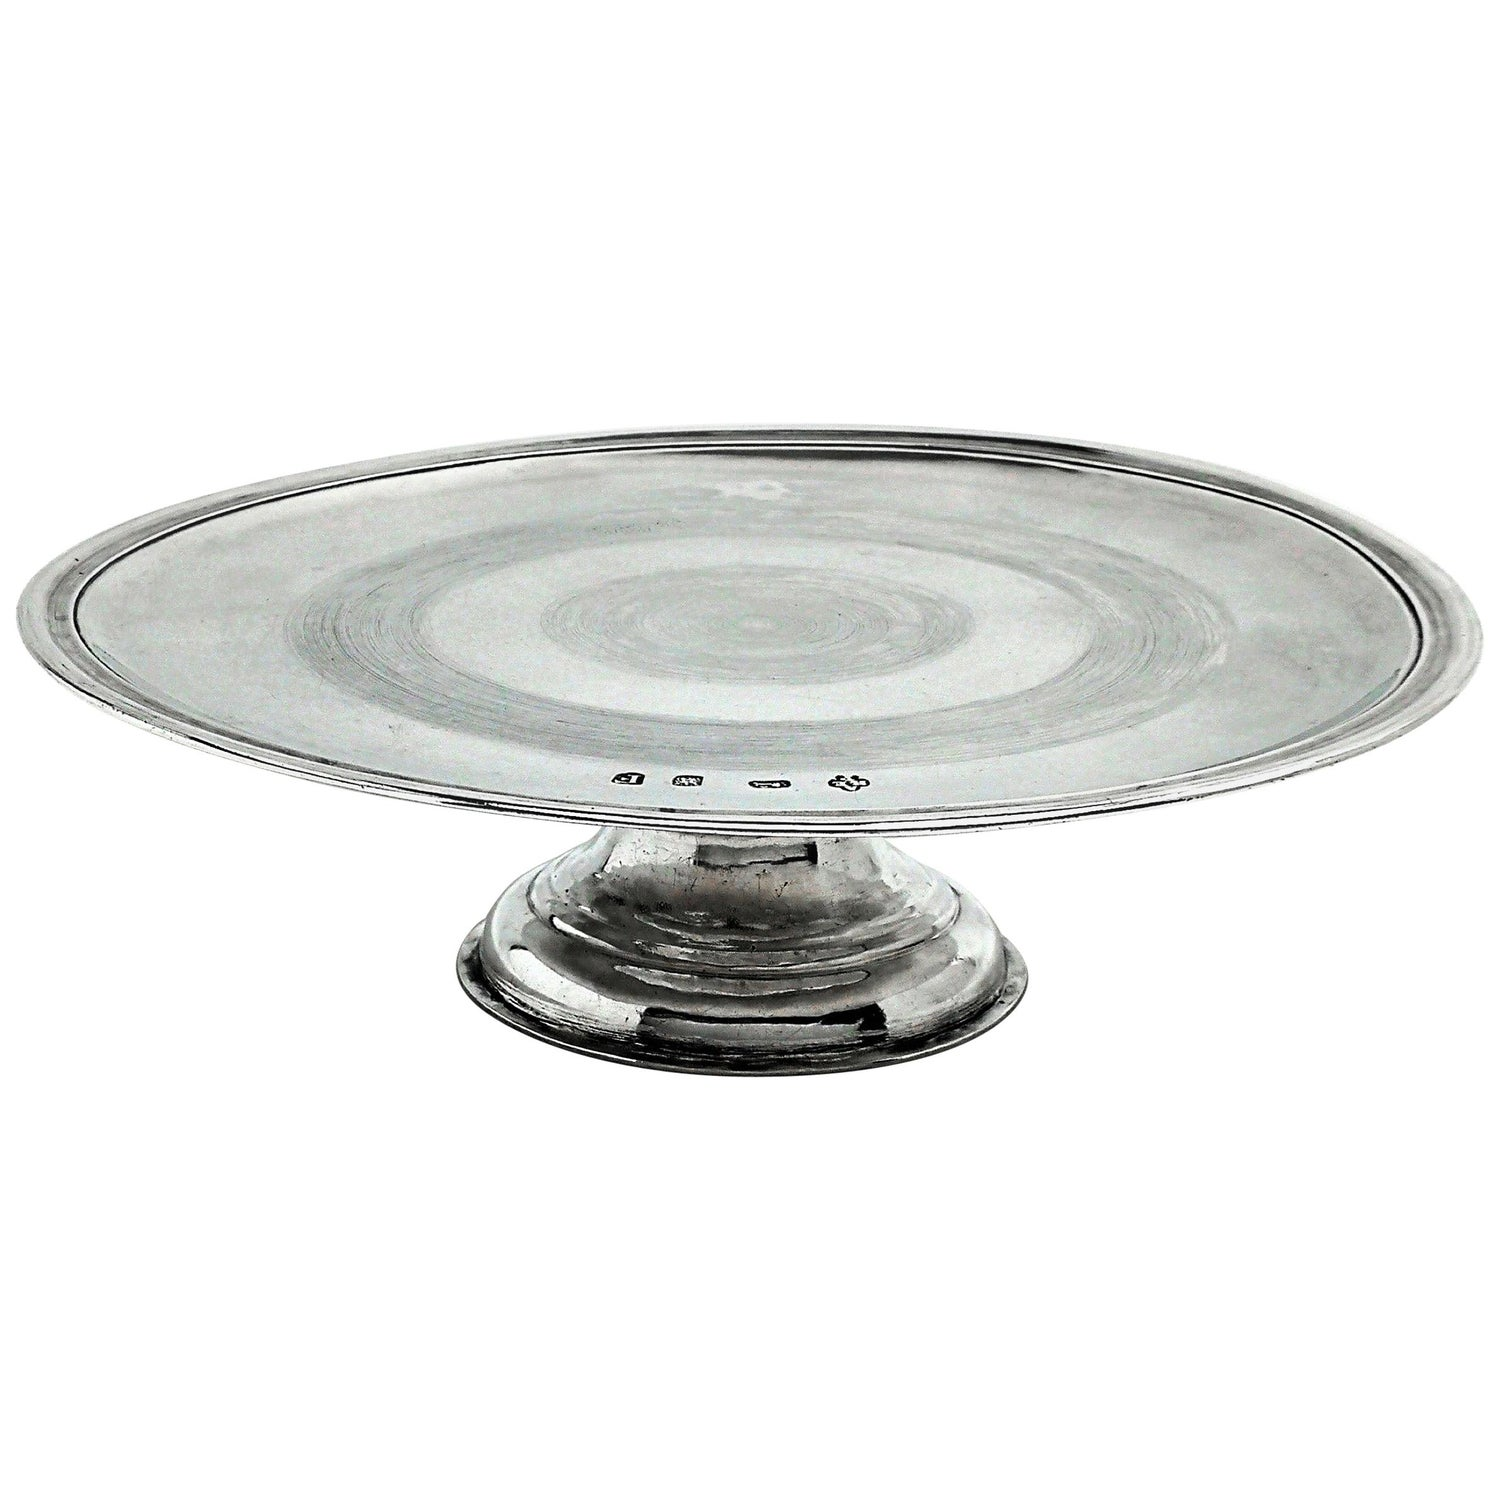 Antique George I Sterling Silver Tazza / Plate 1721 Early Georgian, 18th Century